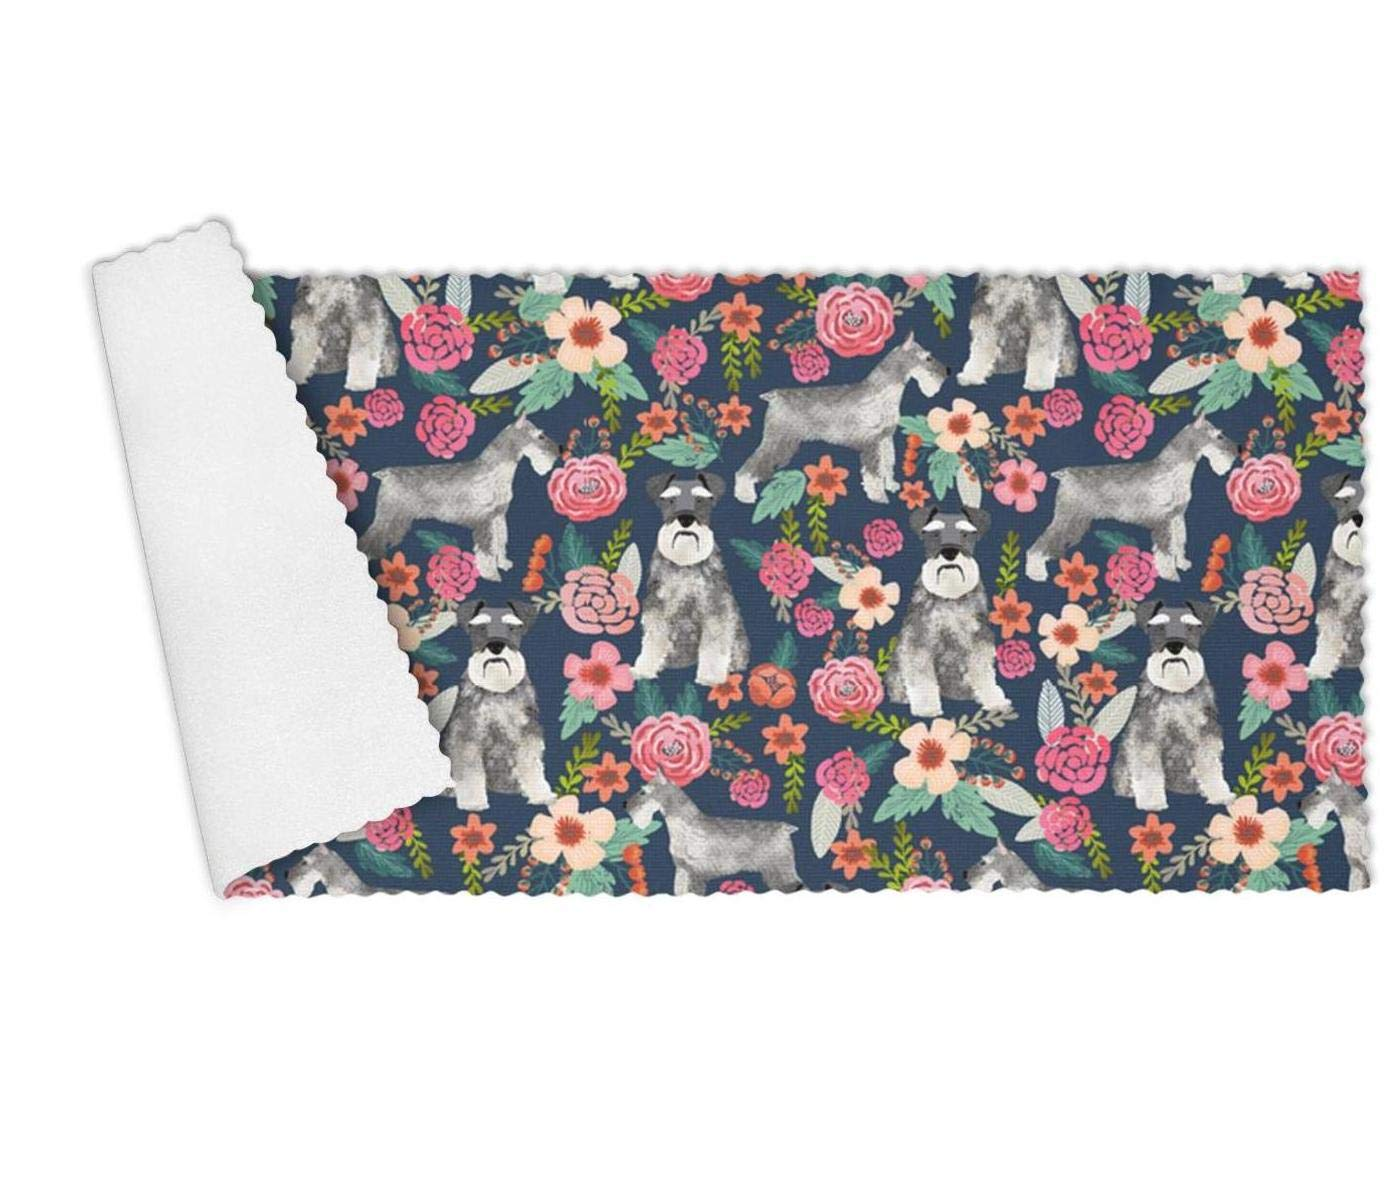 YUEch Kitchen Towels Set of 3 Schnauzer Dog and Vintage Florals Highly Absorbent Low Lint Multi-Purpose Dish Towels, Tea Towels, Bar Towels 12 x 27 Inch